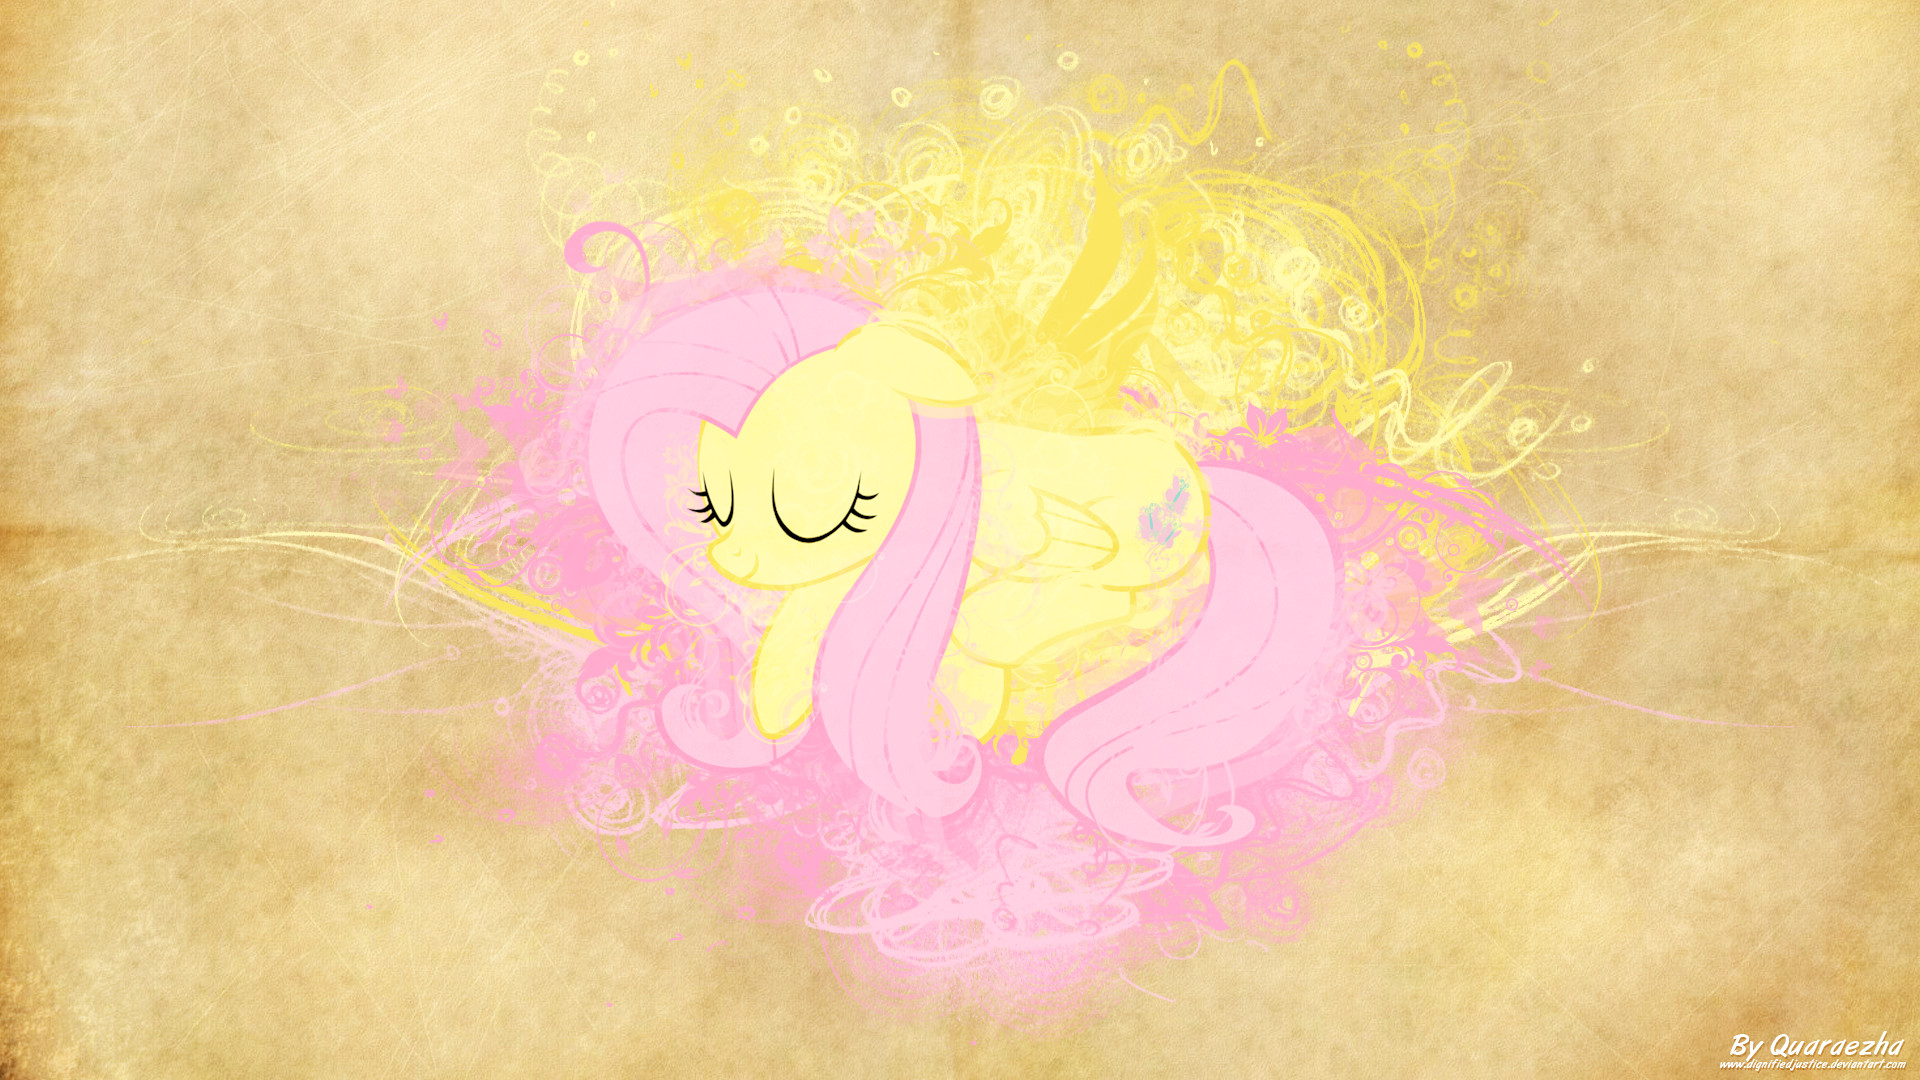 1920x1080 Cartoon - My Little Pony: Friendship is Magic Vector Fluttershy (My Little  Pony)